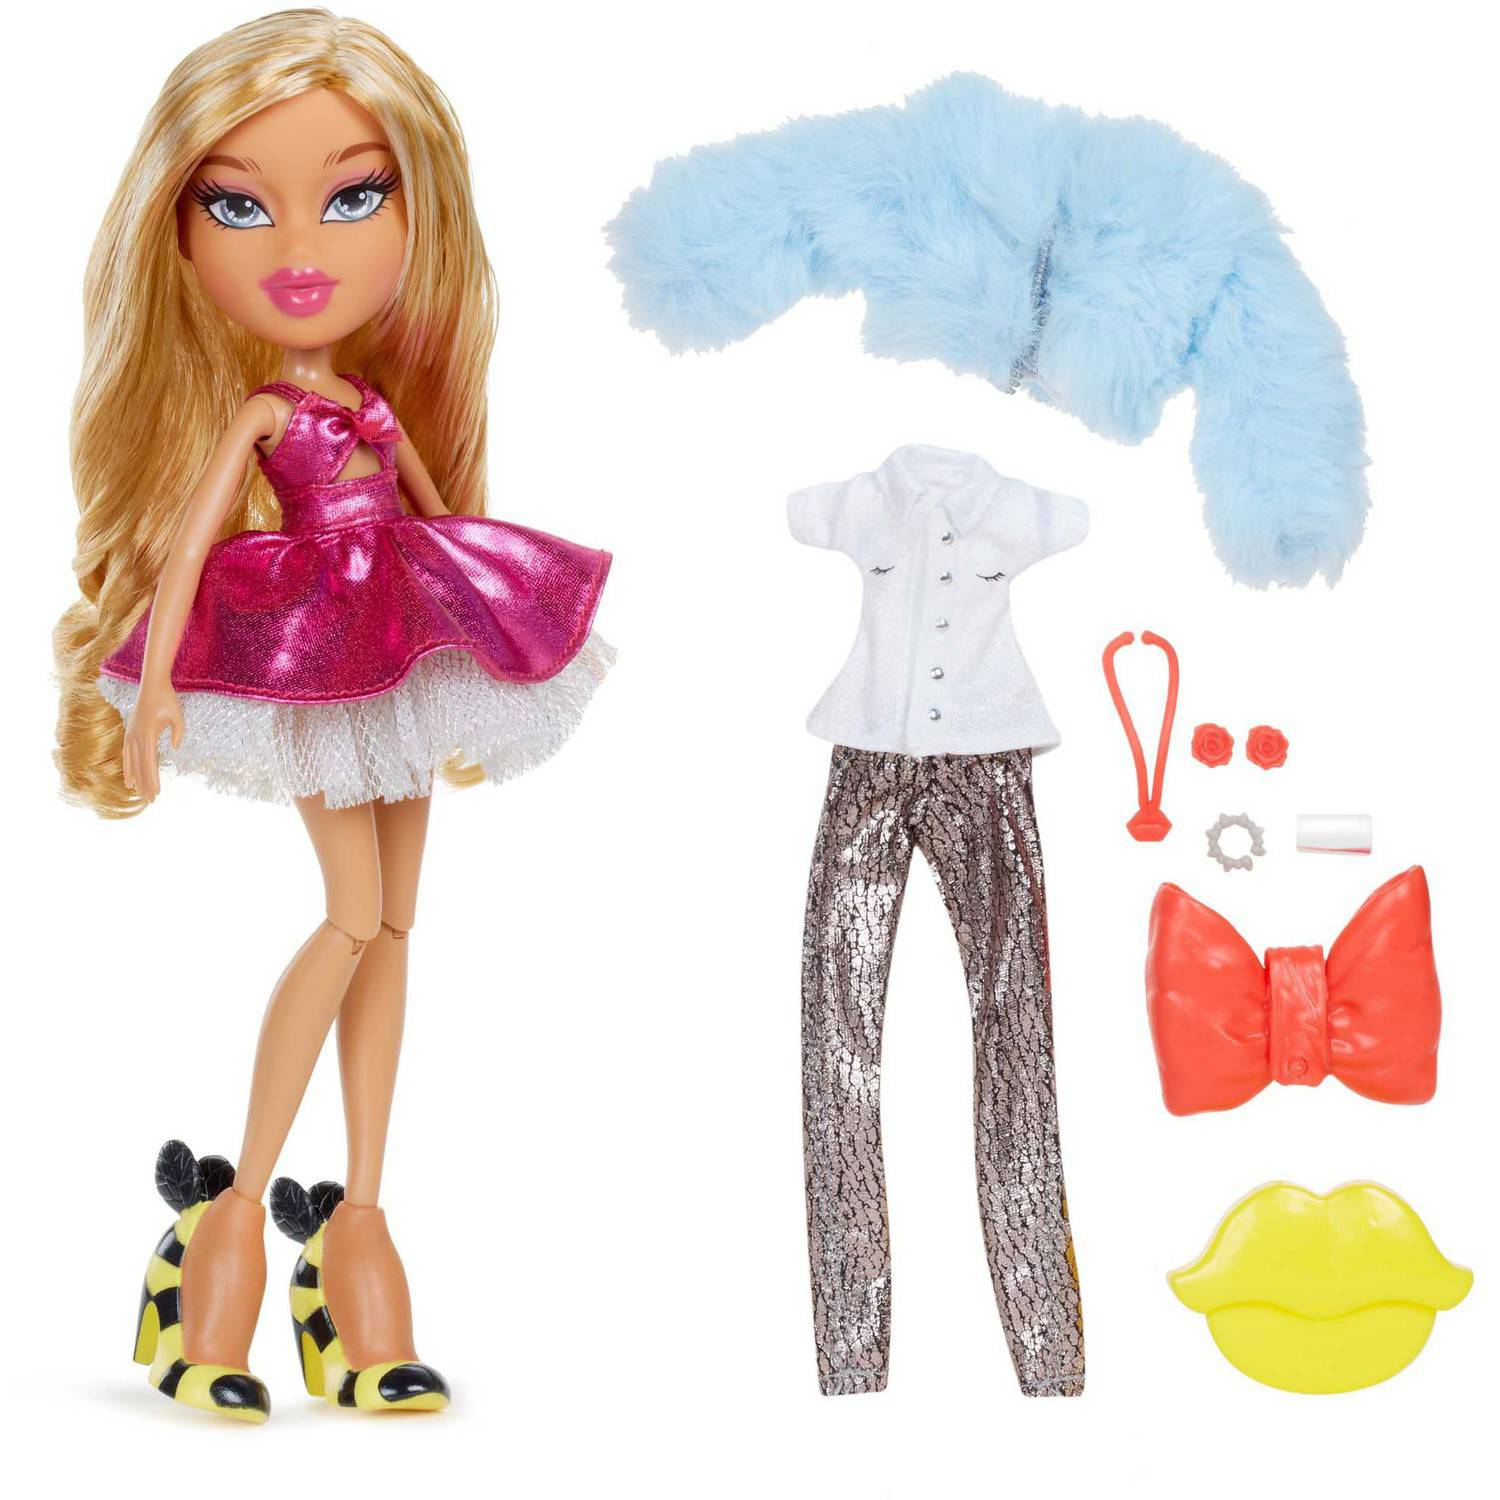 Bratz Metallic Madness Doll, Raya